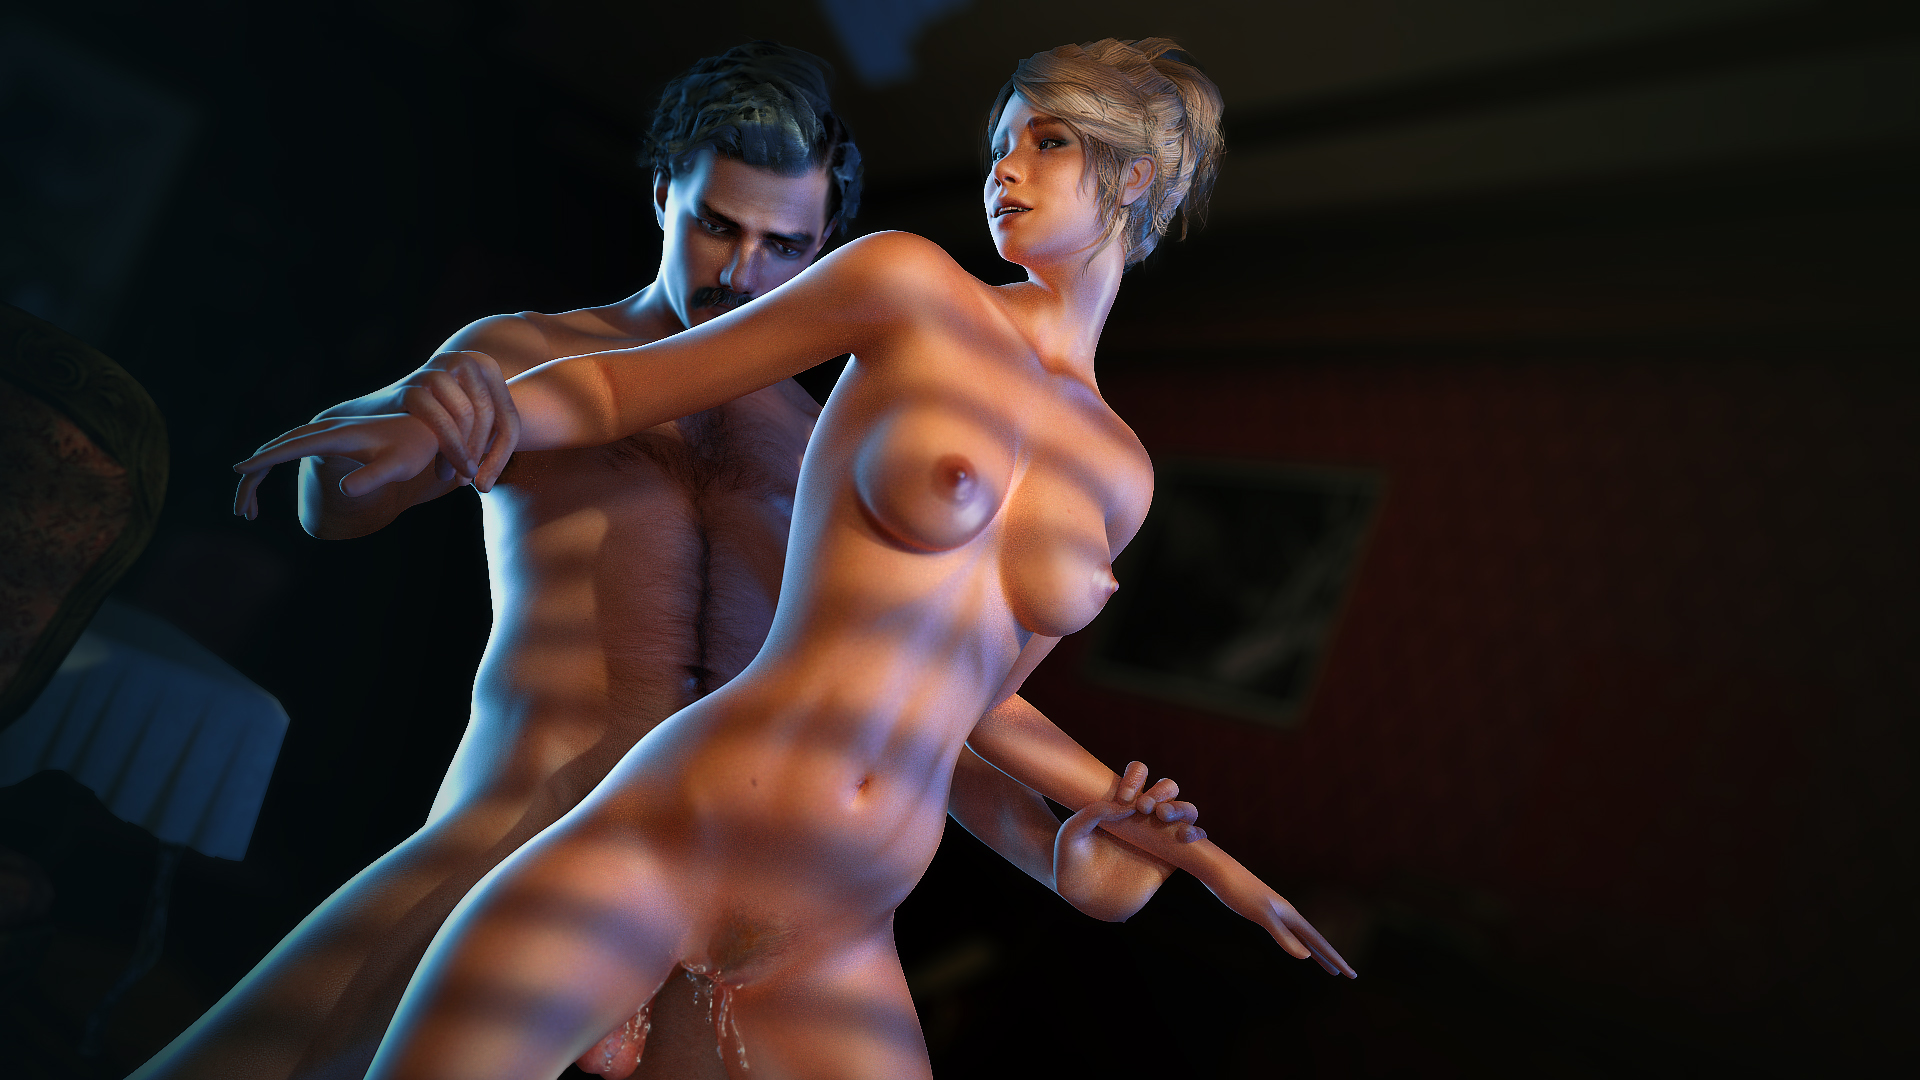 3d narcos xxx game scenes compilation play online 1